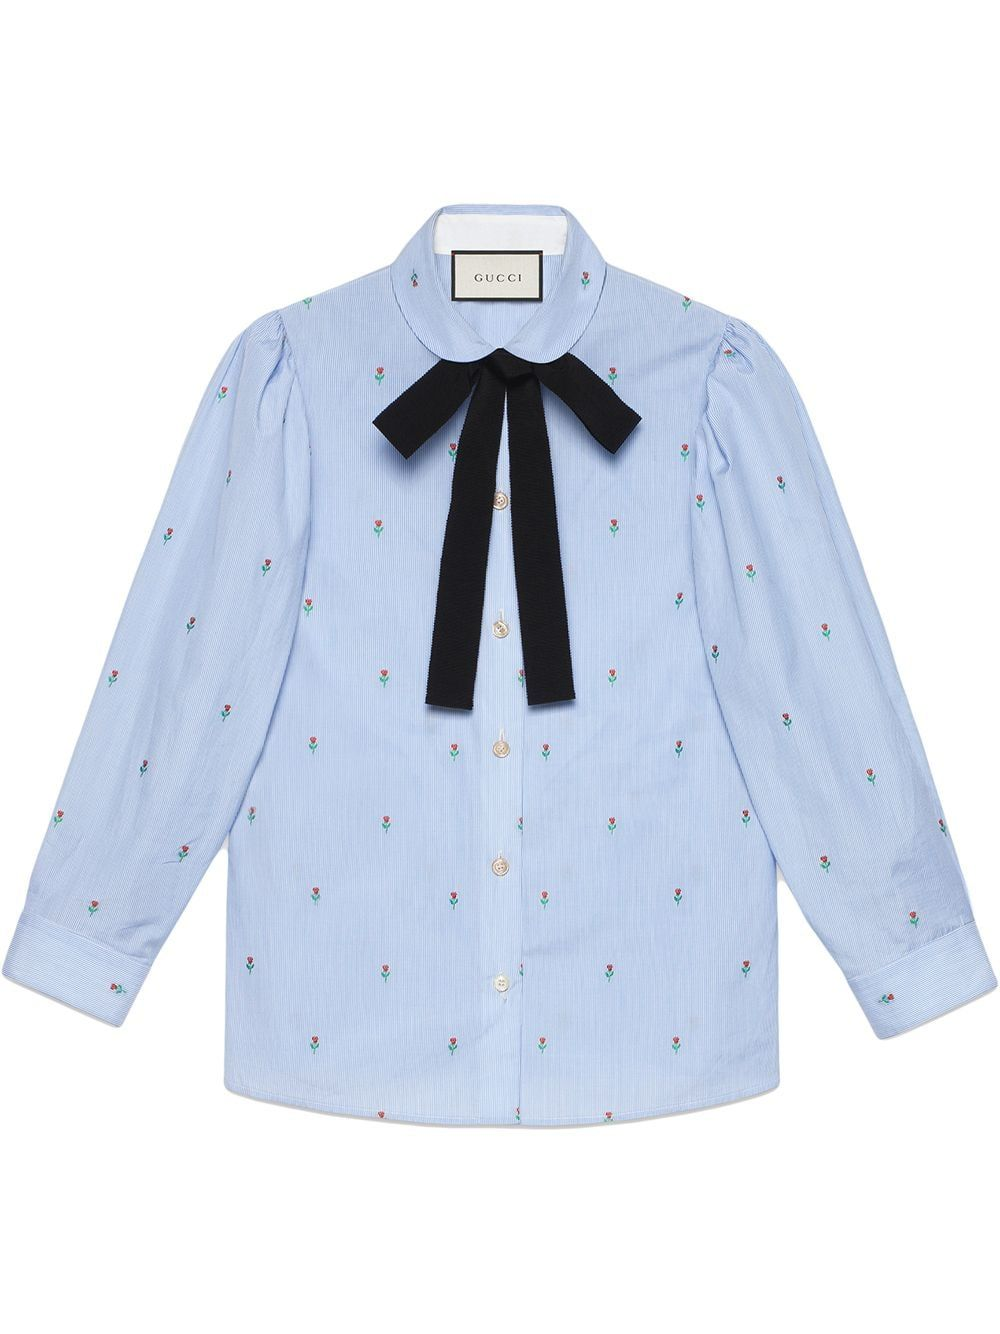 8635e7051 Gucci Rose fil coupé shirt - Blue in 2019 | Products | Shirts, Gucci ...